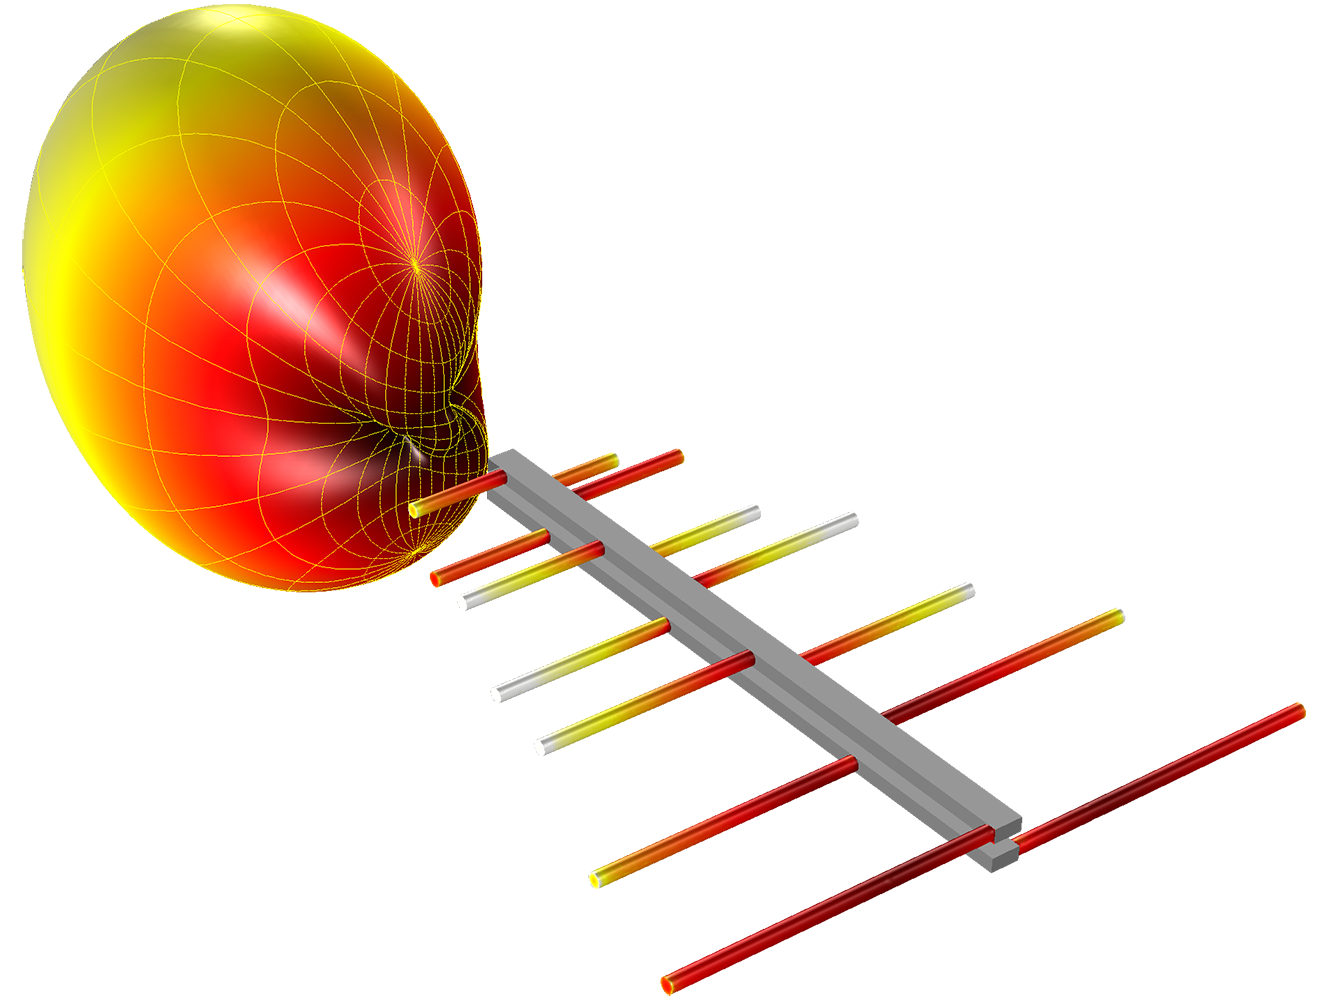 A log-periodic antenna is modeled by fitting a coplanar dipole array through two metallic body frames. The far-field radiation pattern and the norm of electric field on a coplanar dipole array are visualized.